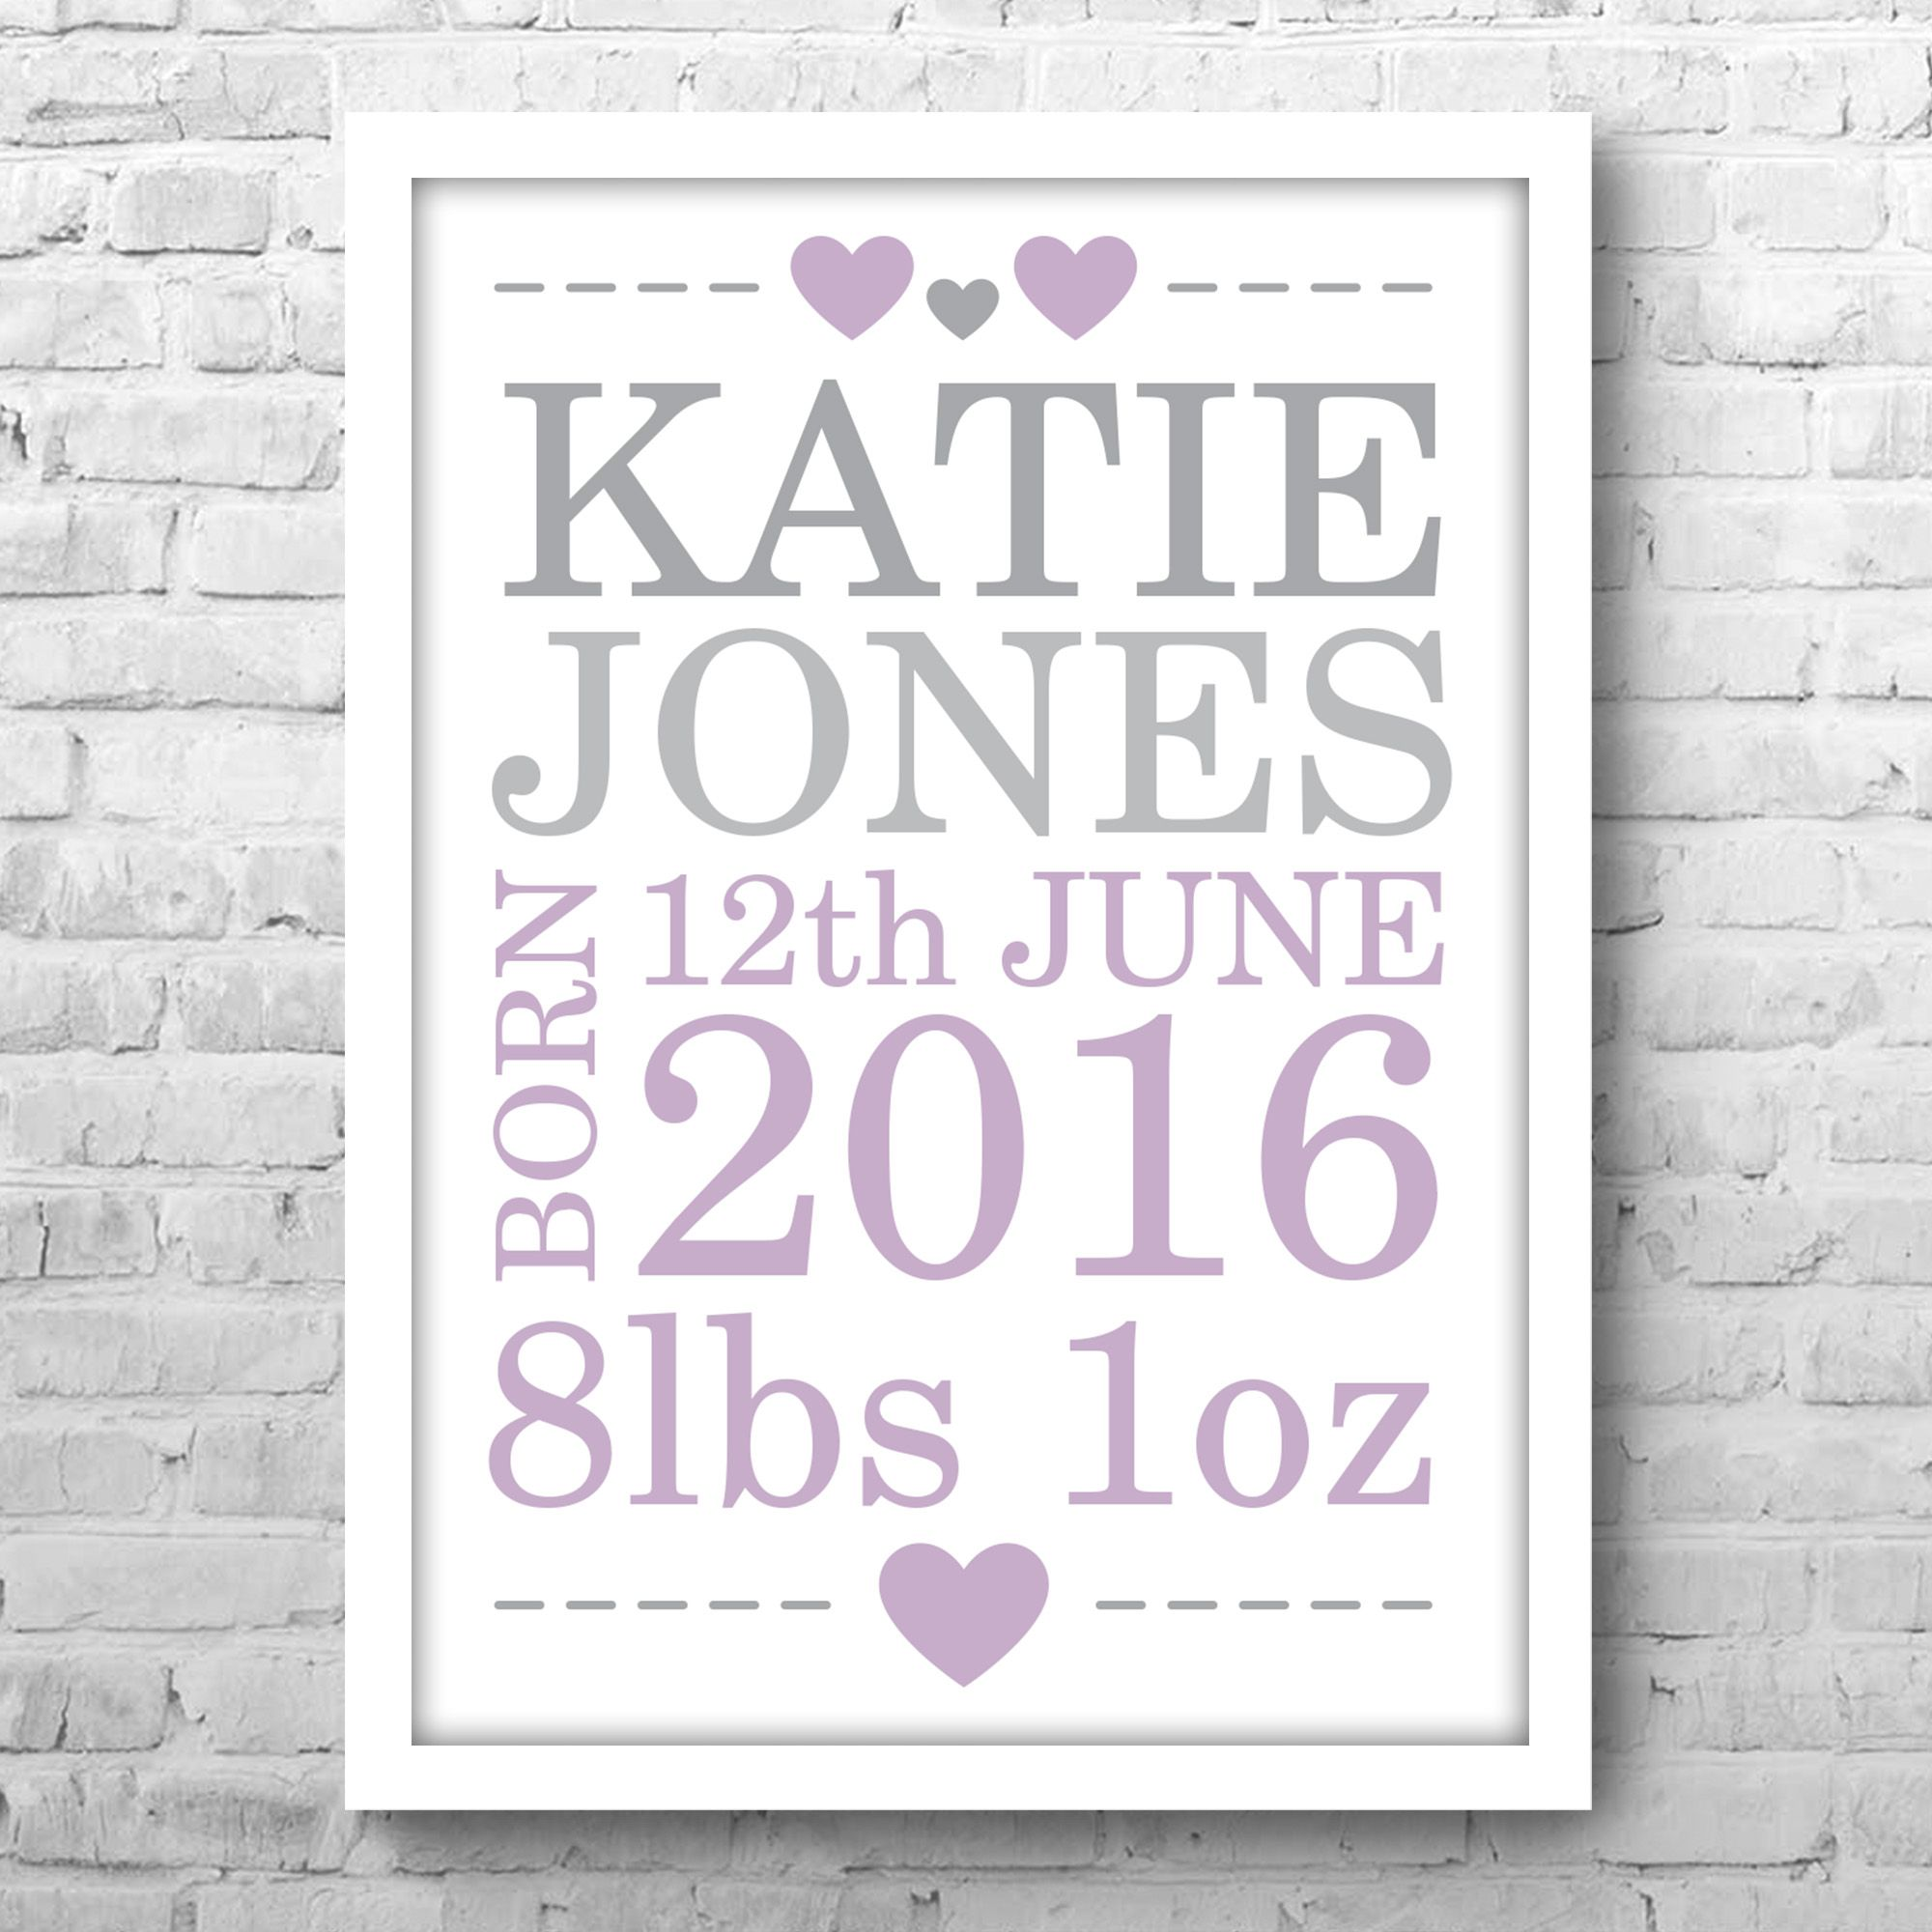 Baby Shower birth gift print. Personalised Print and Gifts From The Little Gift Factory - Personalised Art Gifts For Him and Her. Picture Poster Gifts For Weddings, Birthdays Baby Child